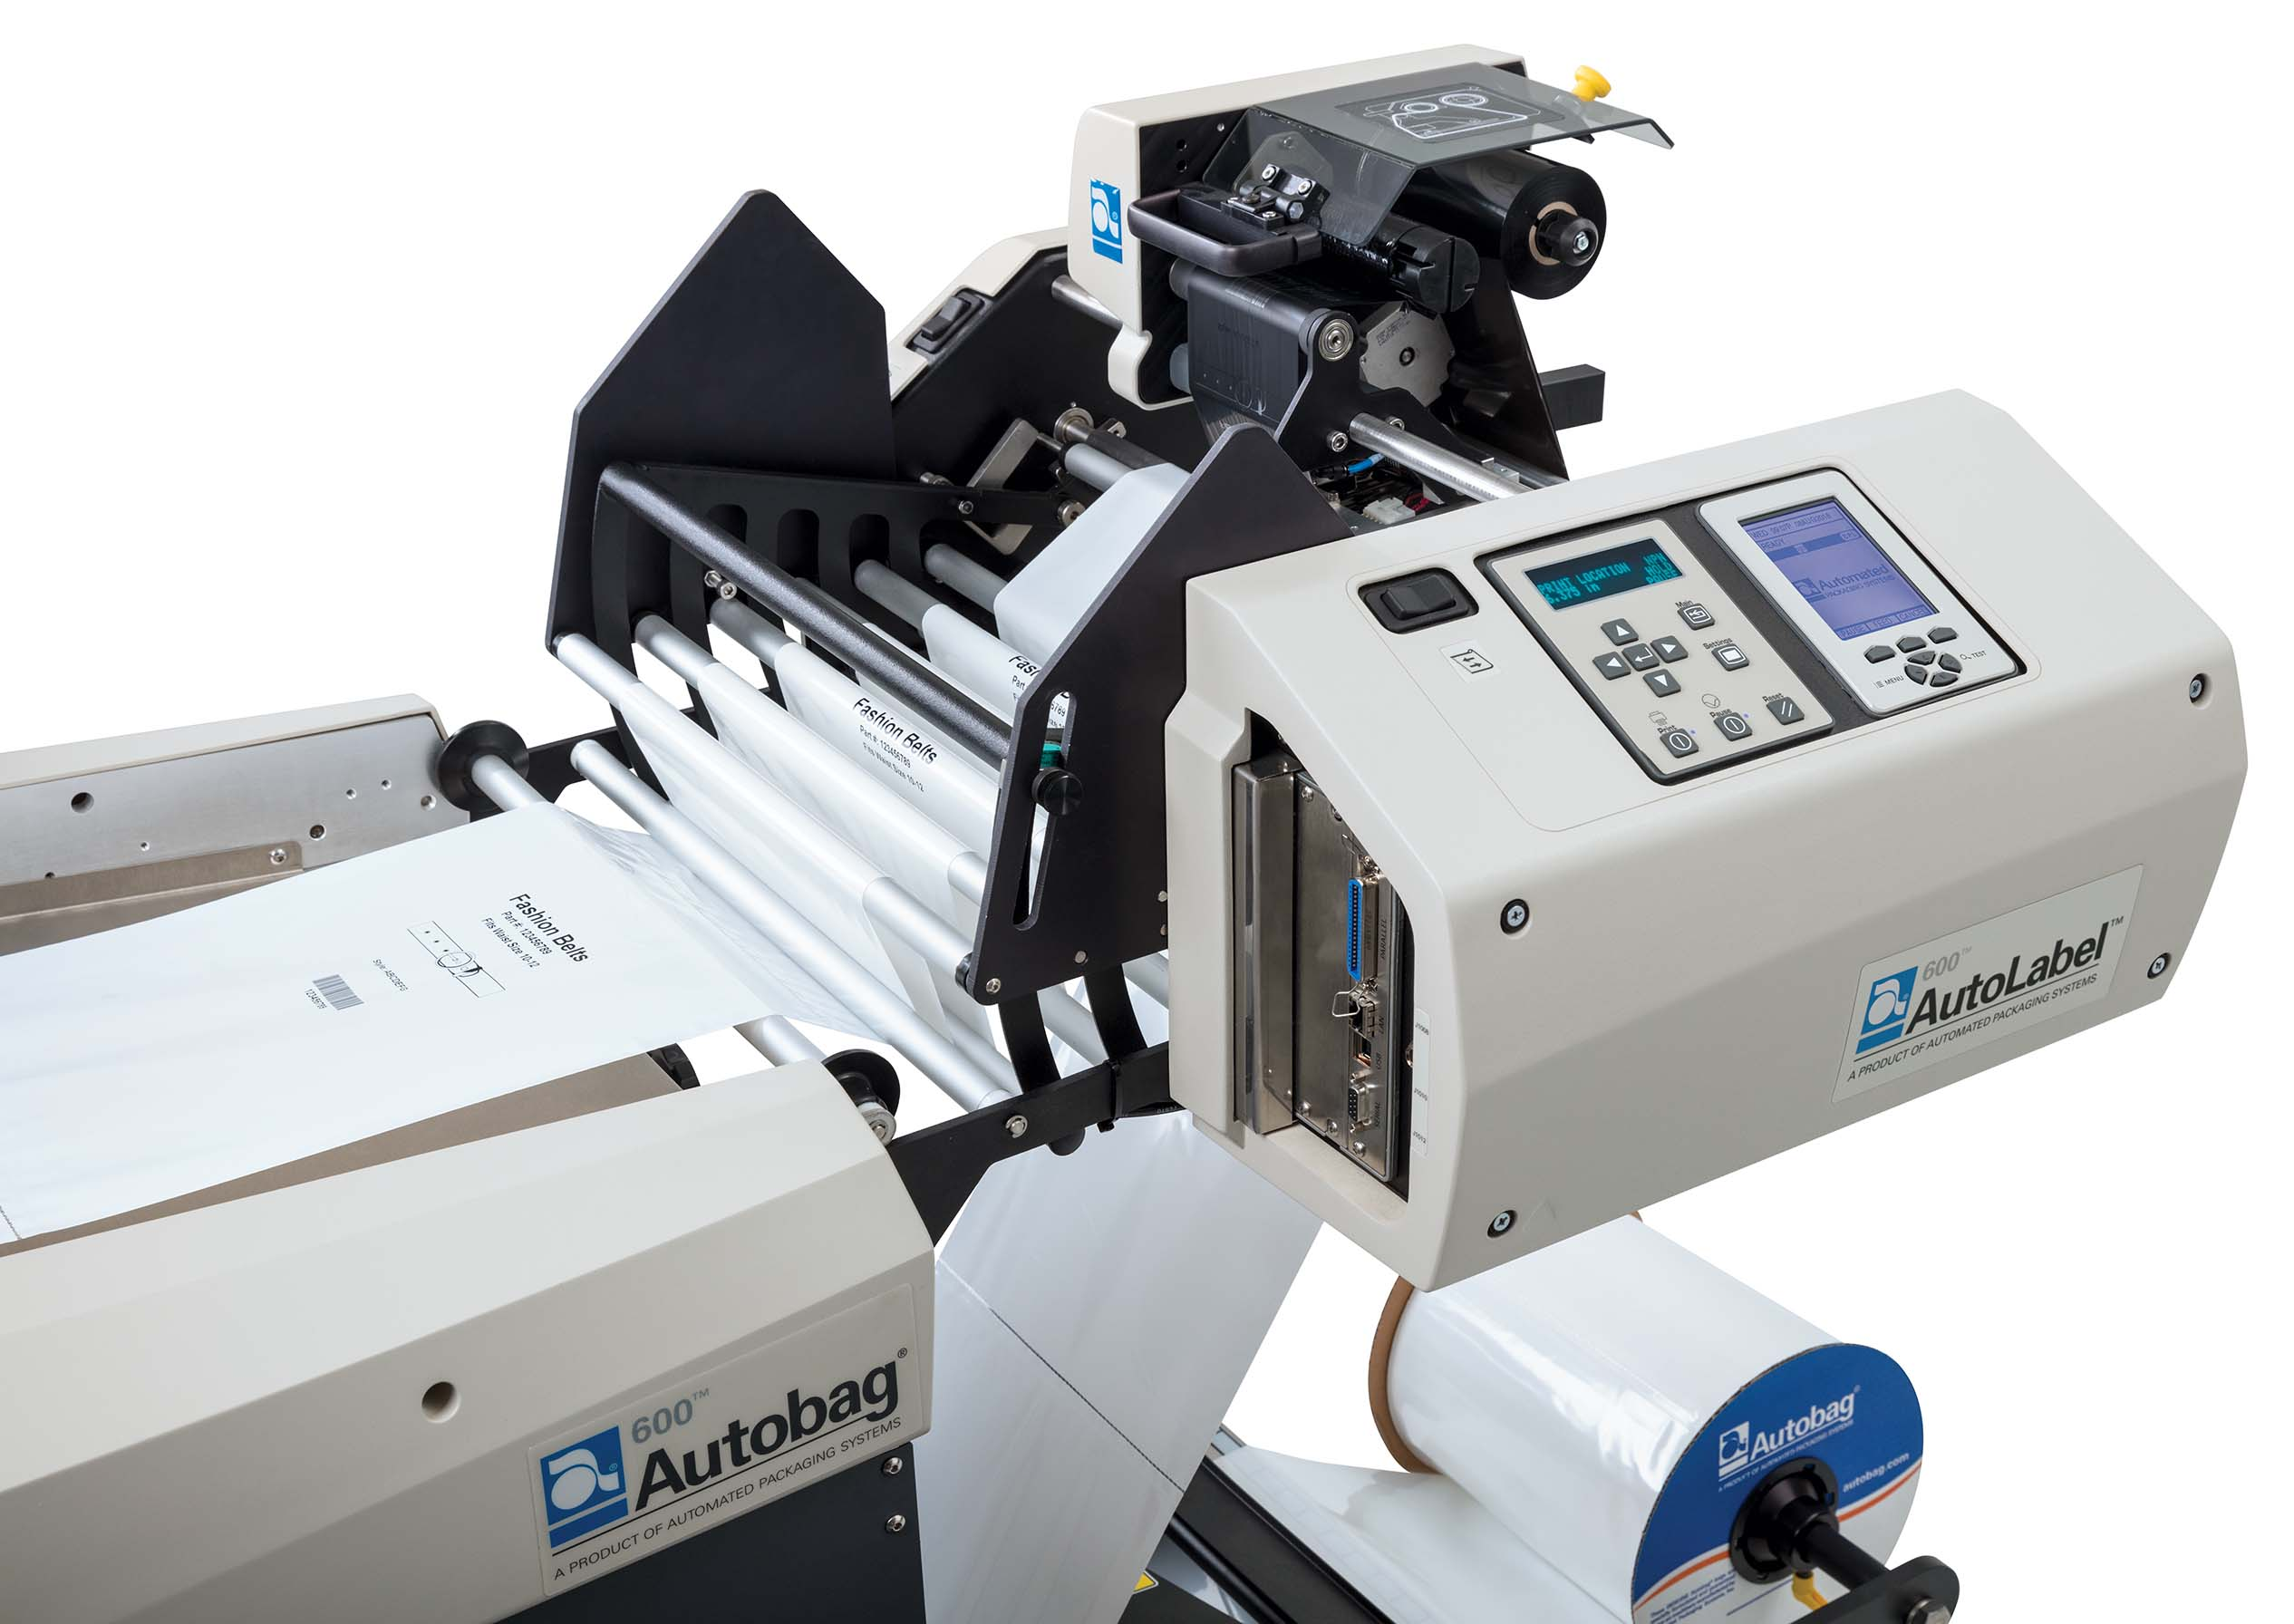 AutoLabel 600 high resolution inline printer close up